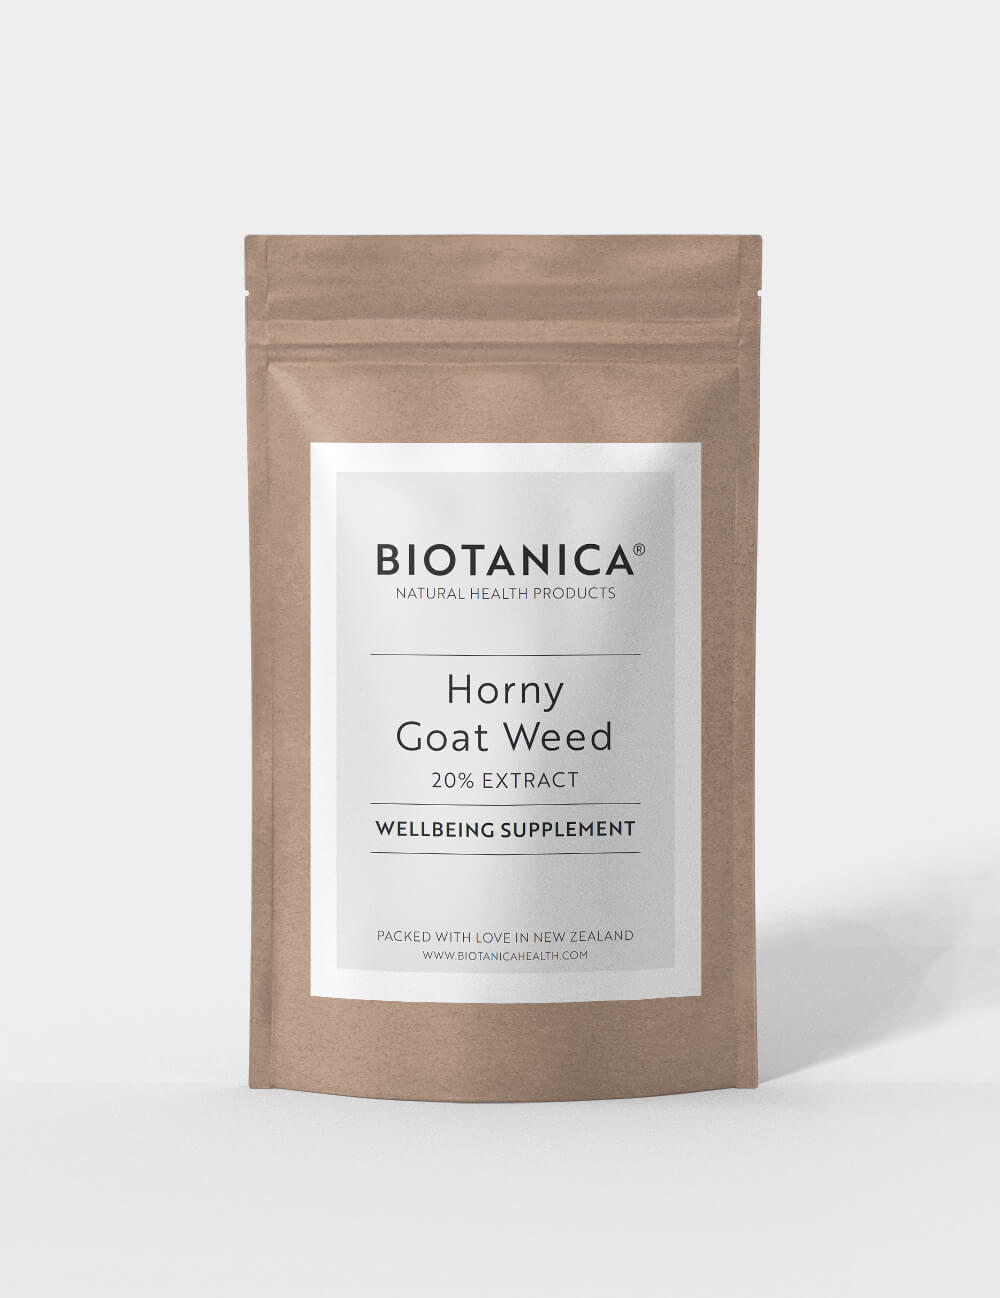 Horny Goat Weed Image 1